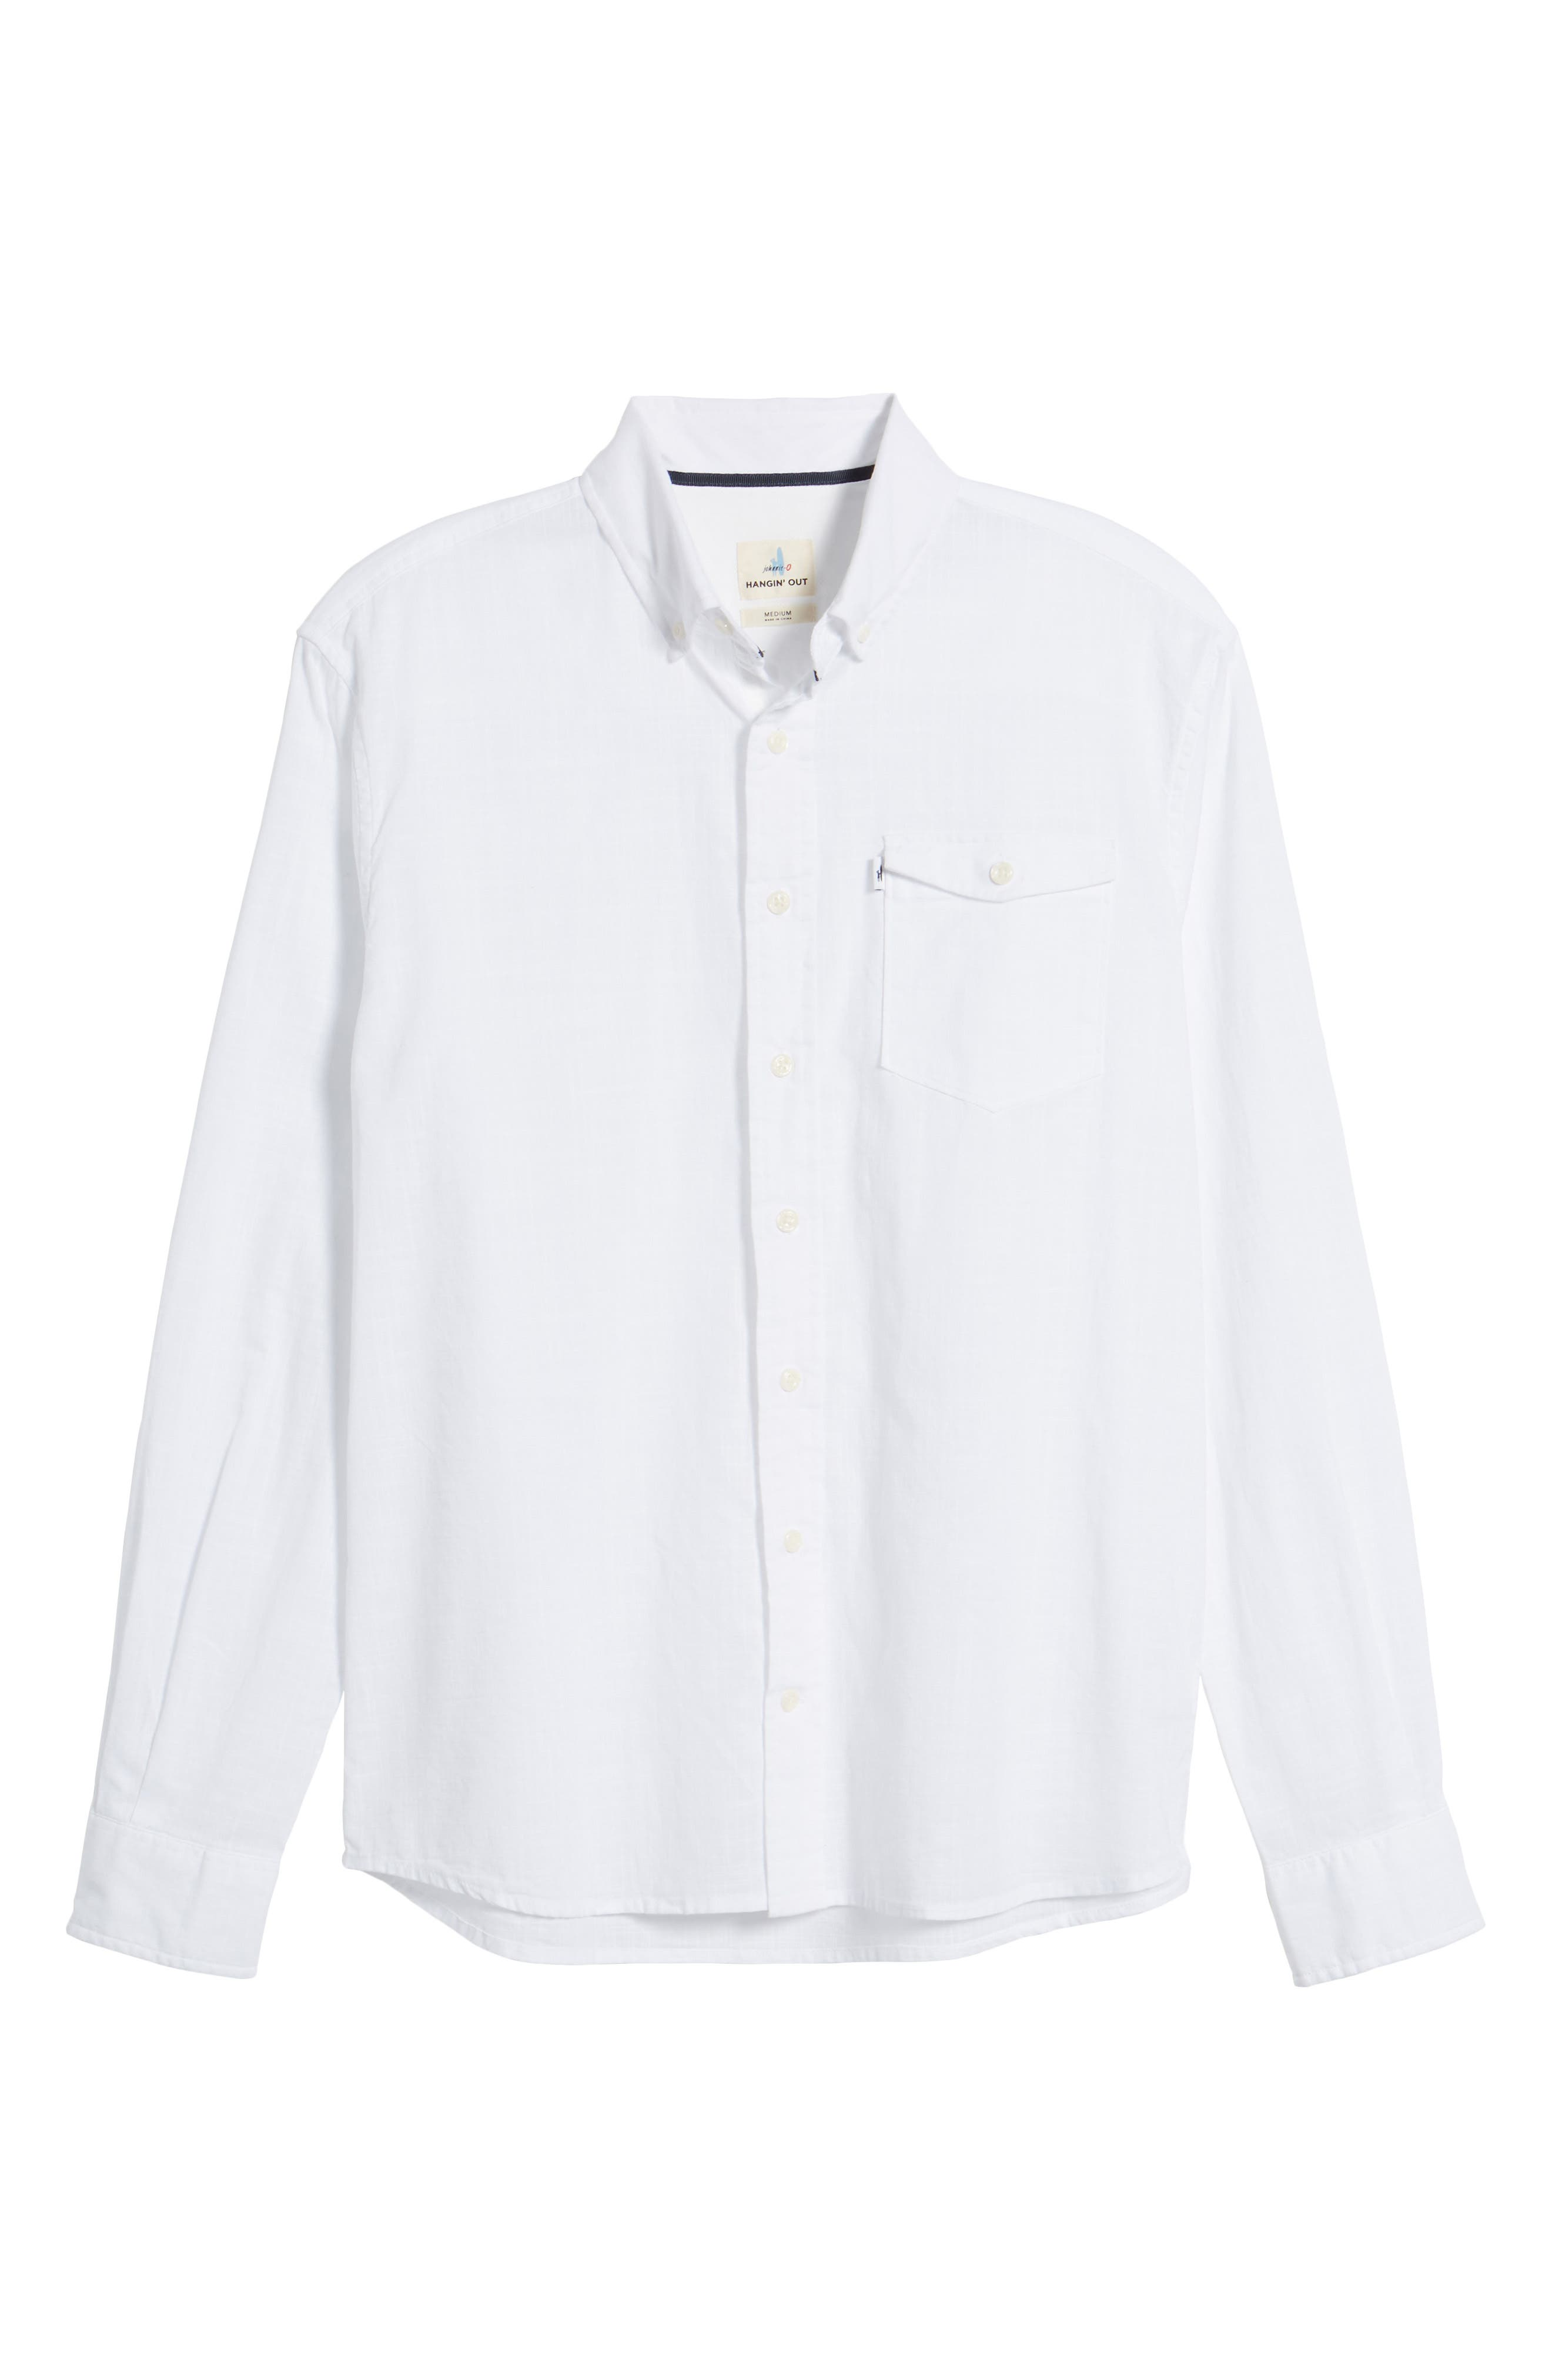 Brodie Regular Fit Sport Shirt,                             Alternate thumbnail 6, color,                             White